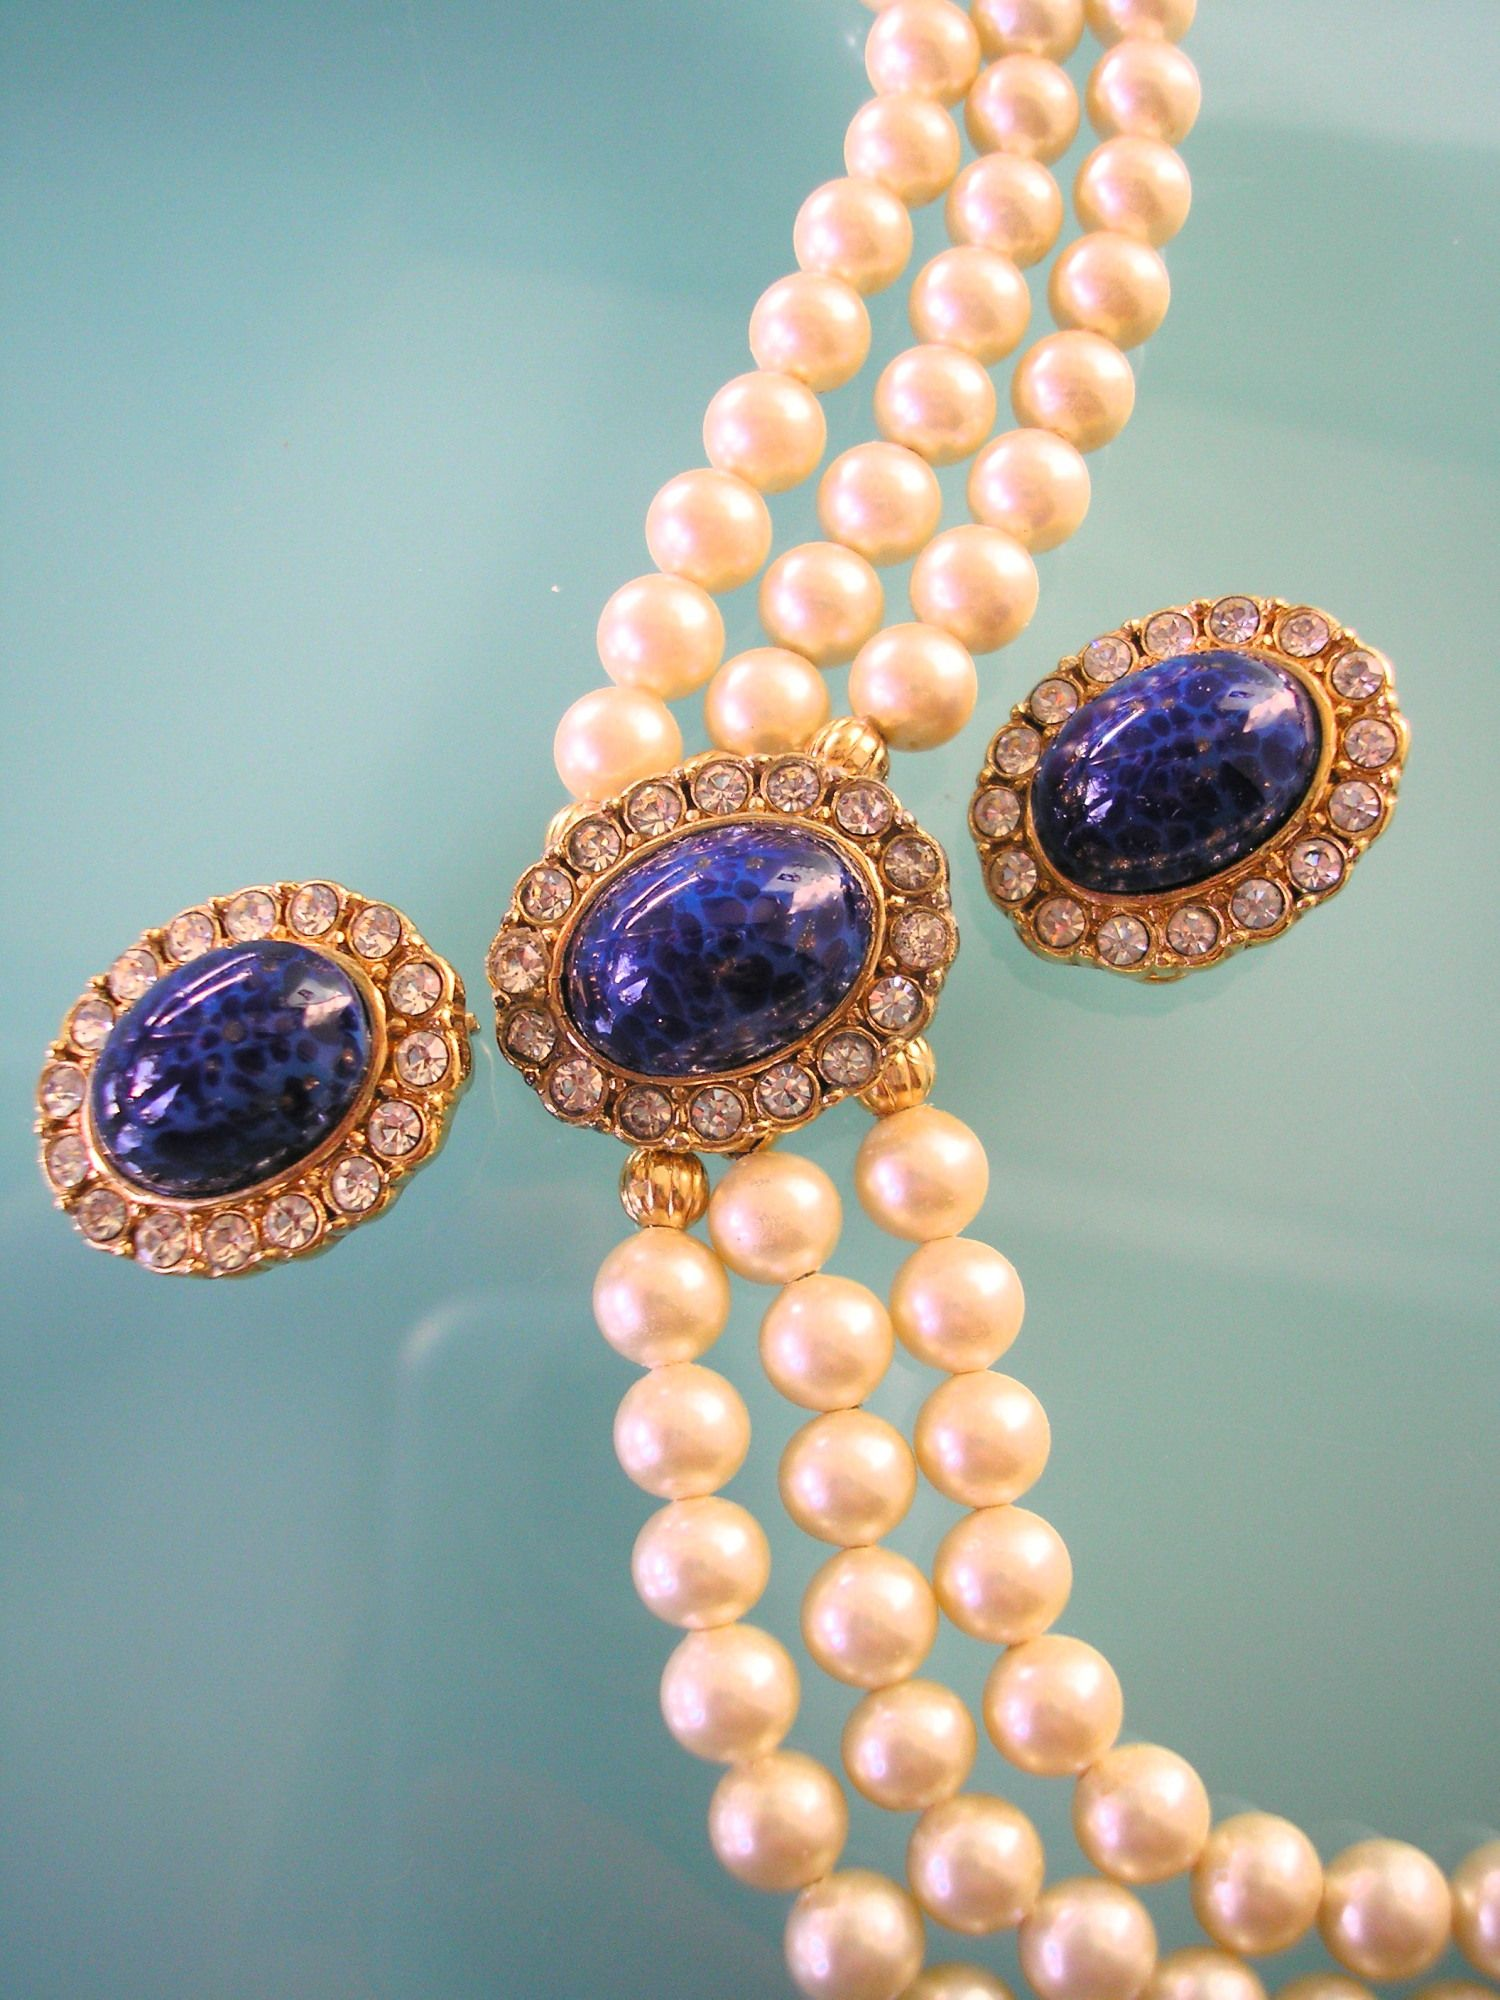 Attwood And Sawyer Jewelry Set, Bridal Pearls, A And S